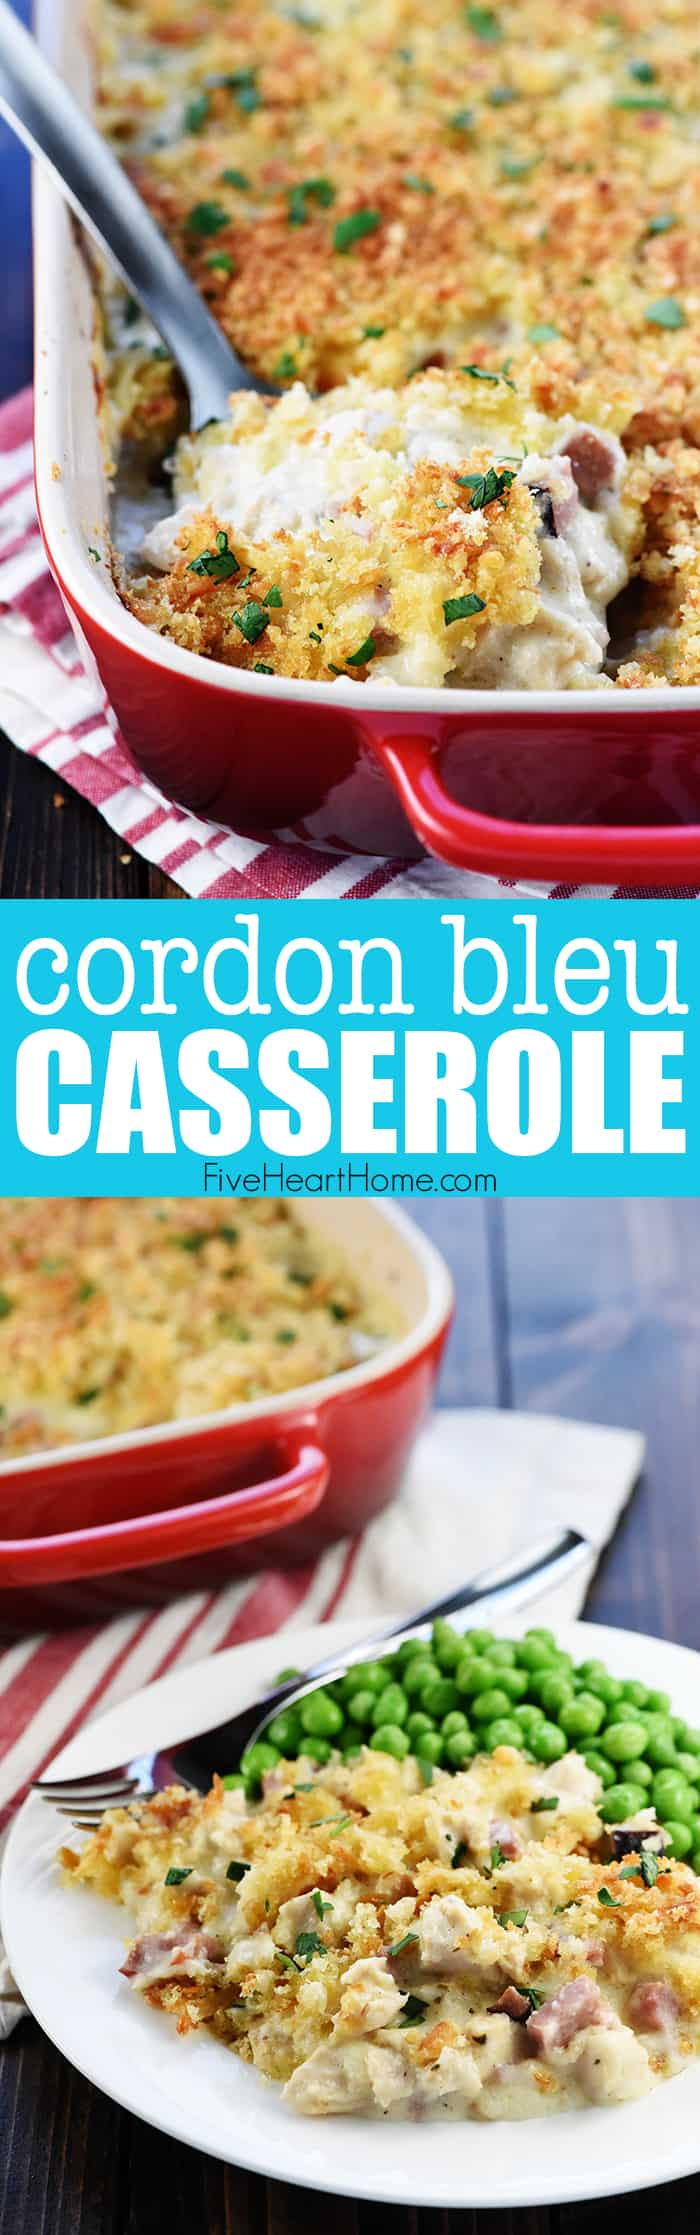 Cordon Bleu Casserole ~ loaded with chicken (or turkey) and ham in a creamy Swiss cheese sauce topped with a layer of toasty bread crumbs for a decadent, delicious dinner...perfect for using up Thanksgiving leftovers collage with text overlay